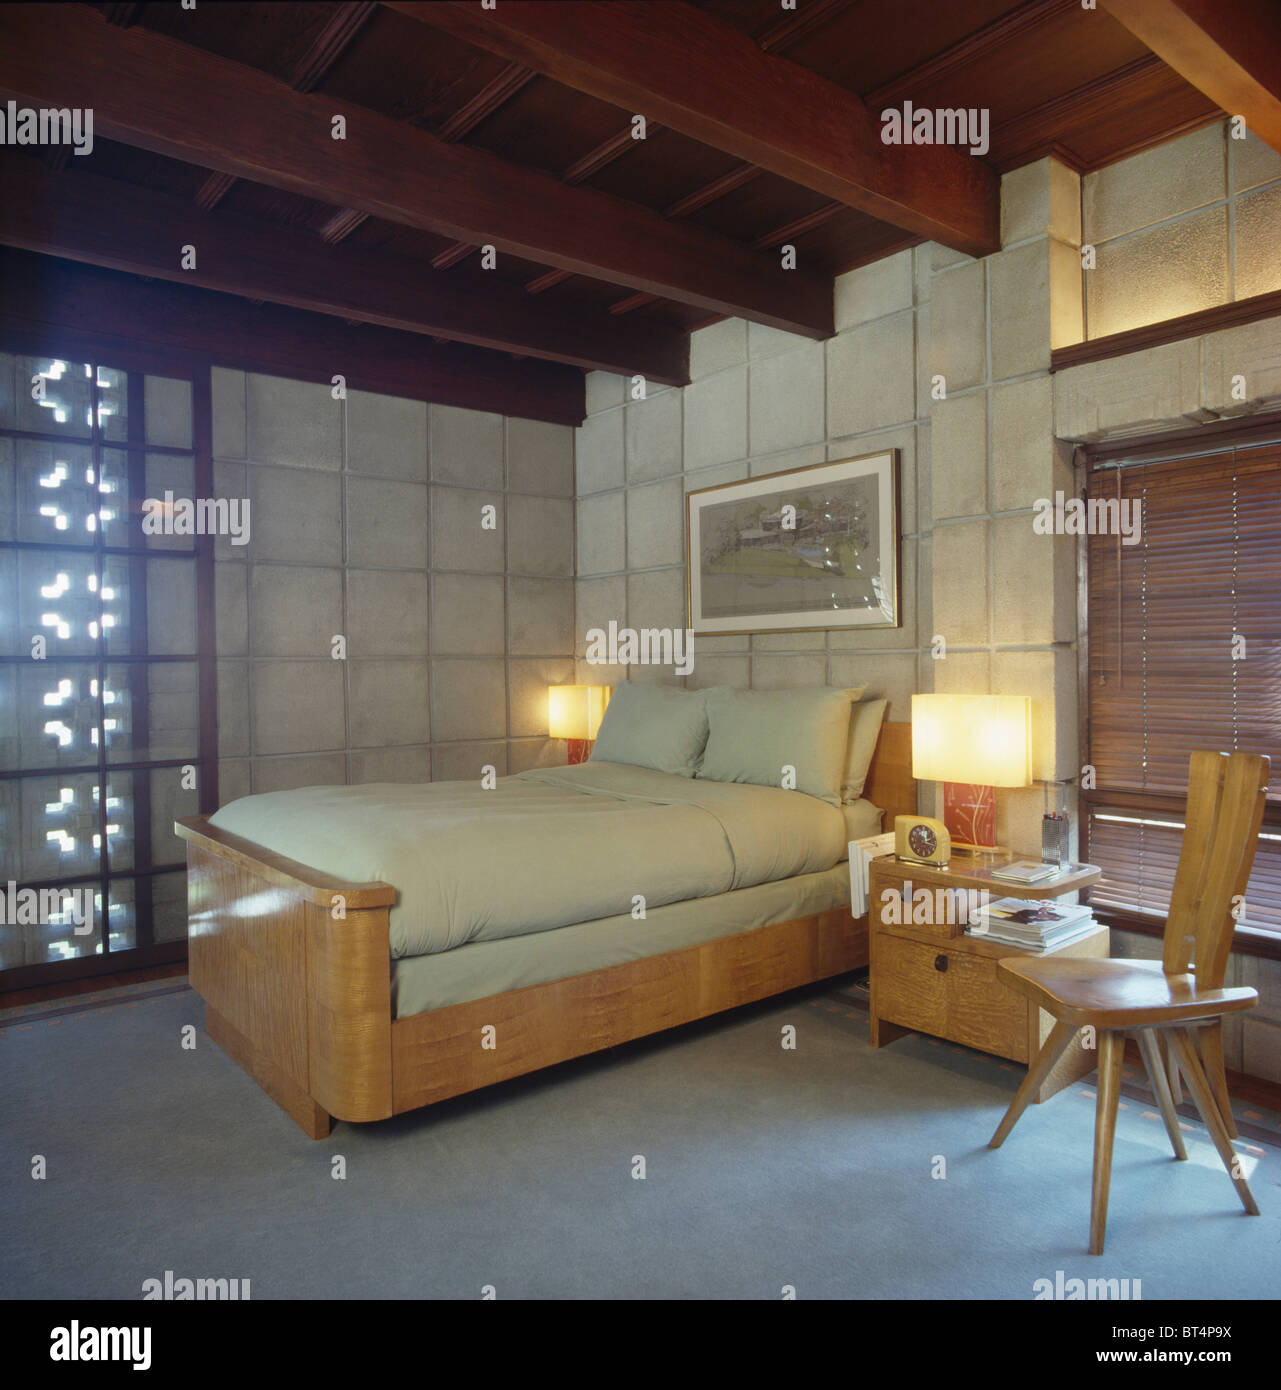 Mid Century Modern Bedroom High Resolution Stock Photography And Images Alamy